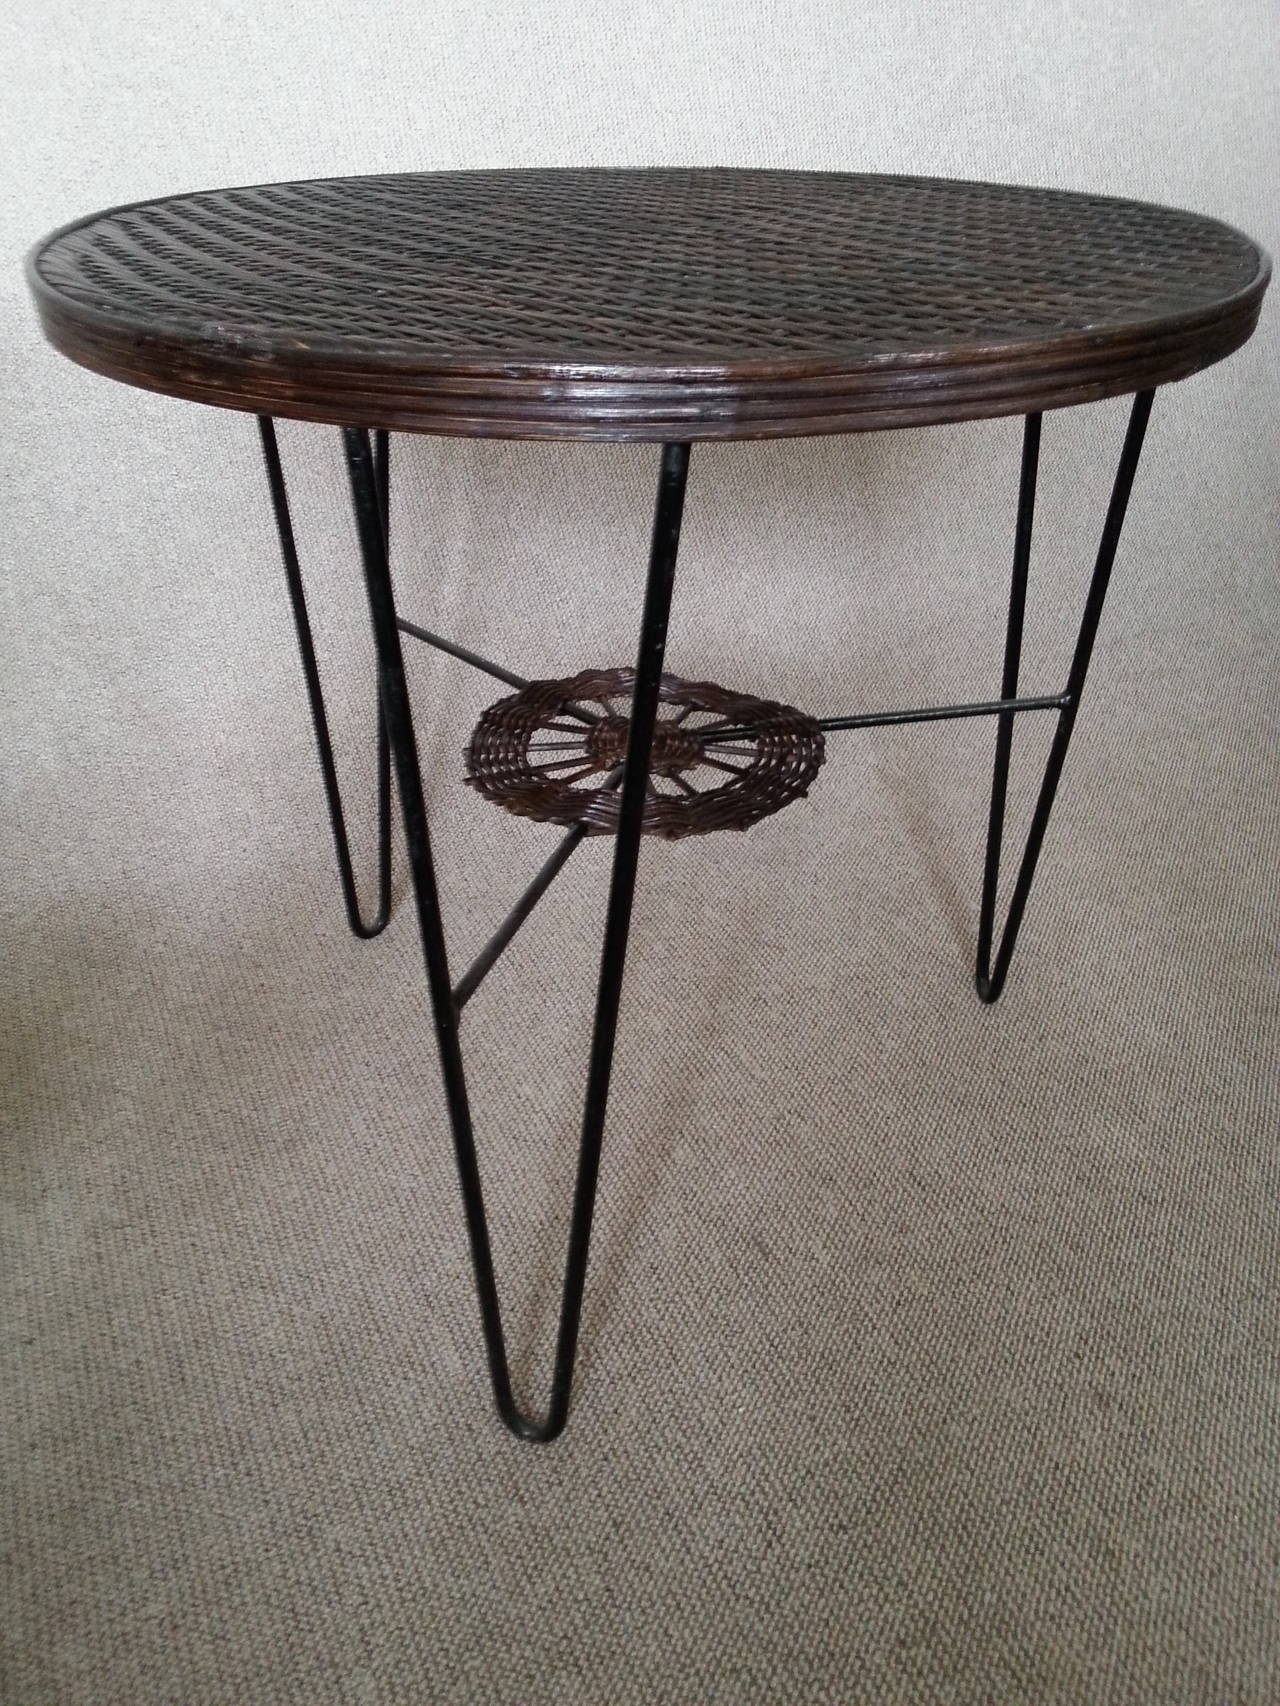 Rattan and iron coffee center table france 1950s for sale for Center coffee table furniture